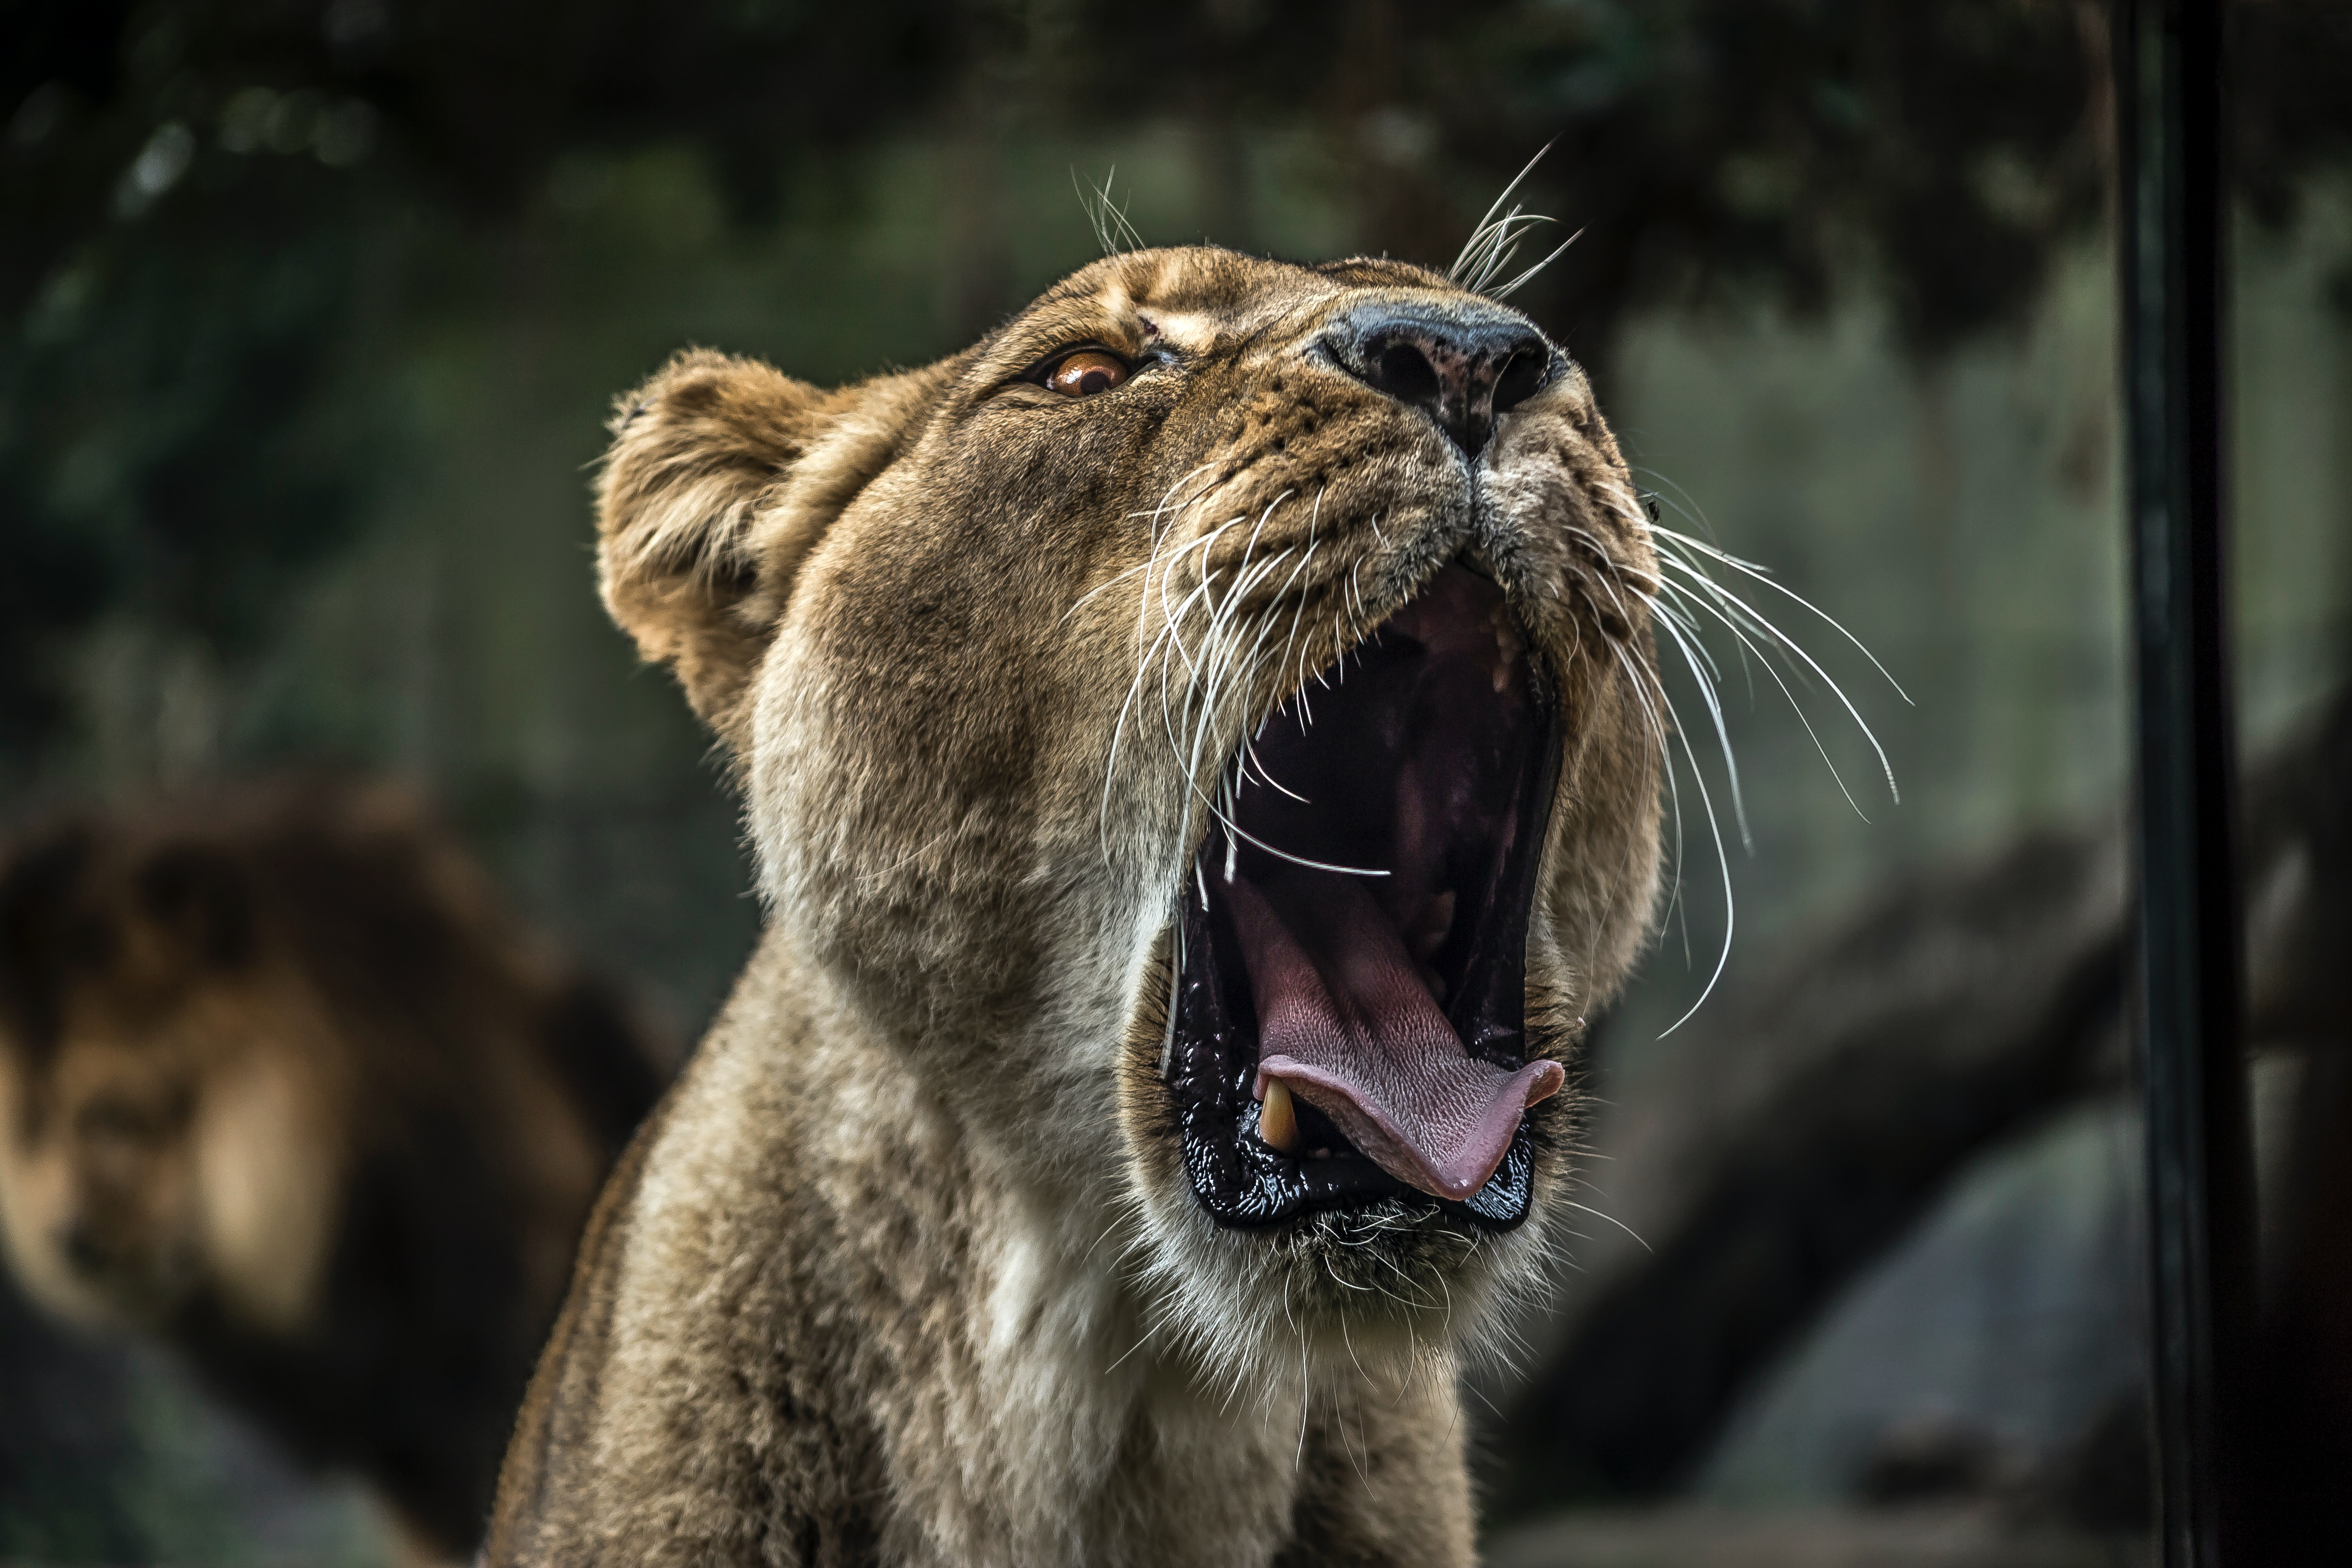 Image of a growling lion.